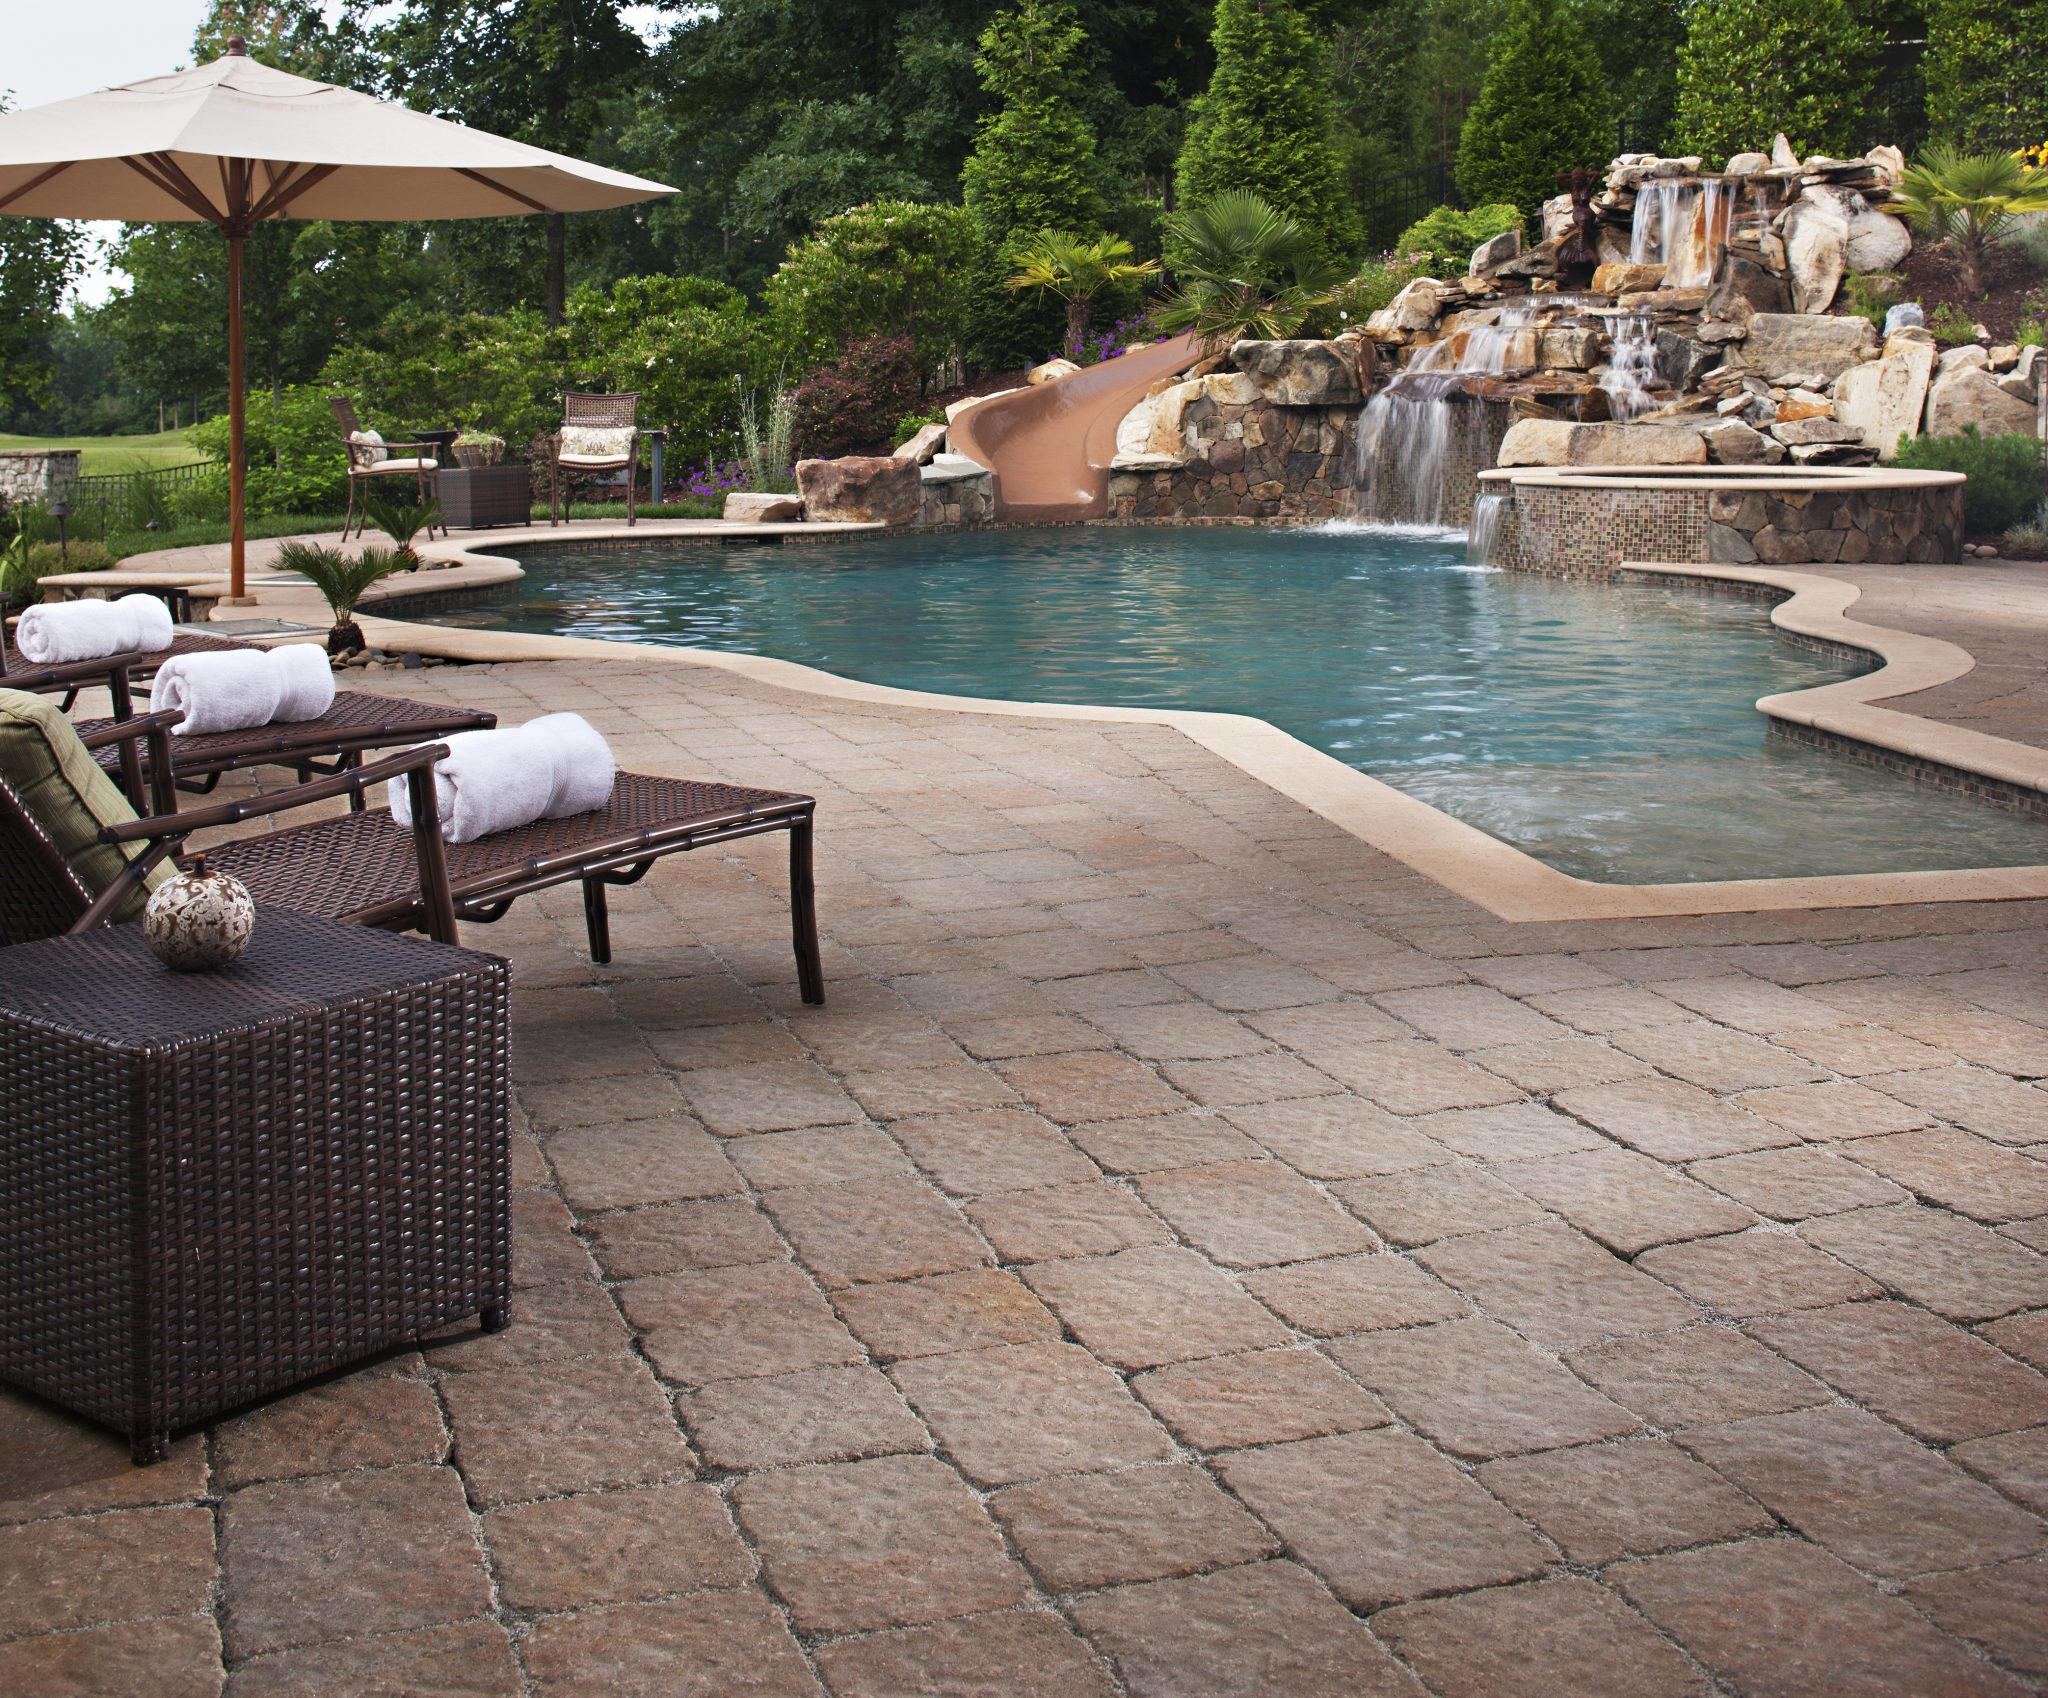 pool deck materials: paving stones